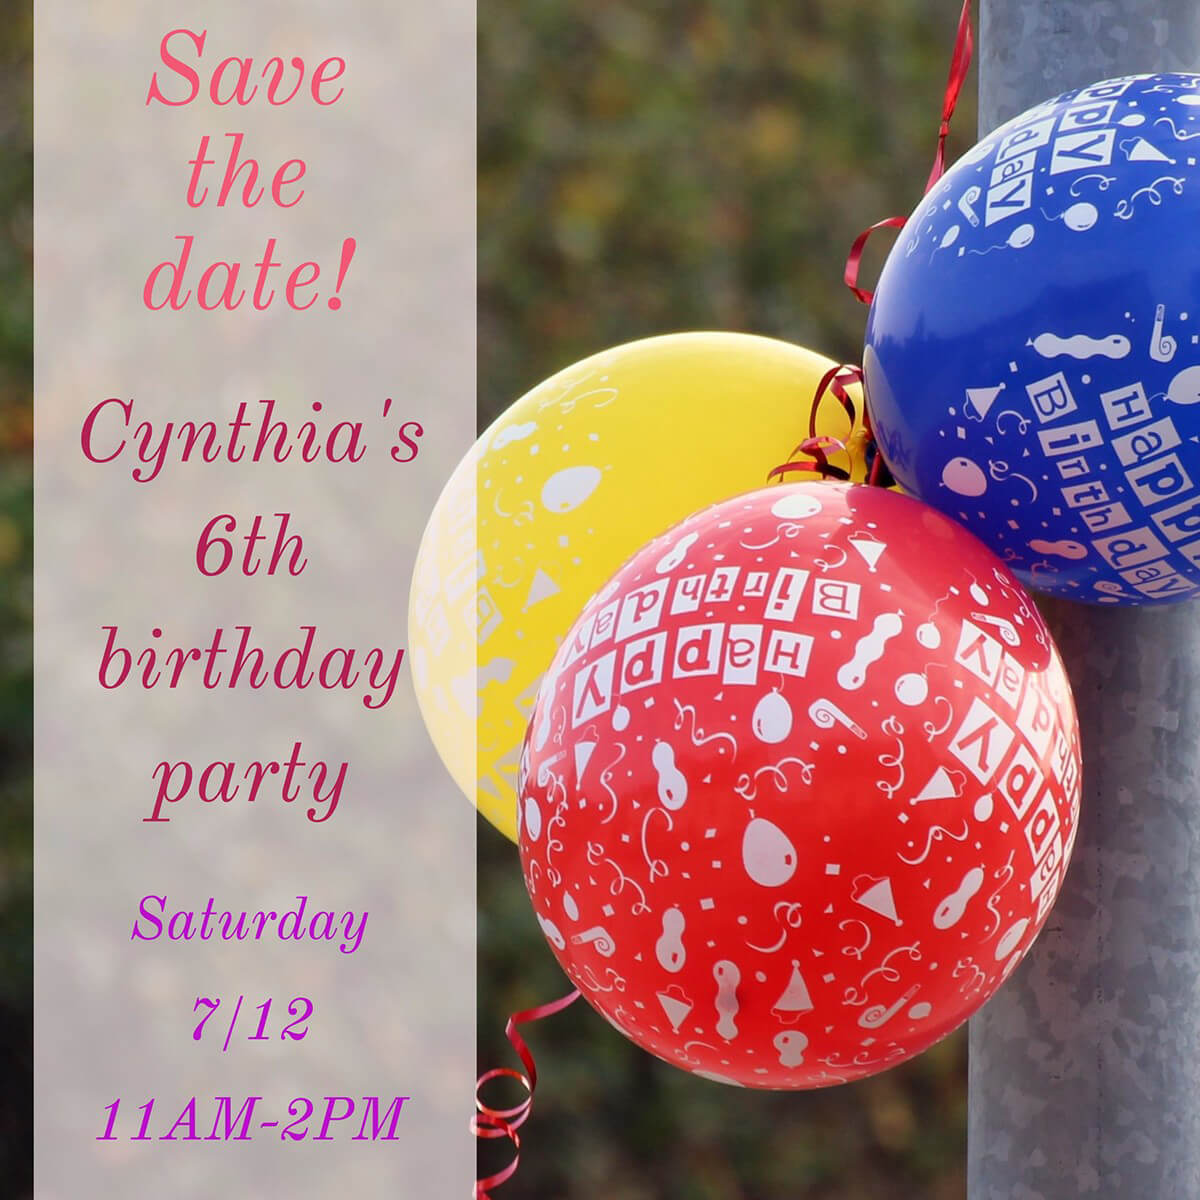 Cynthia's birthday party invitation